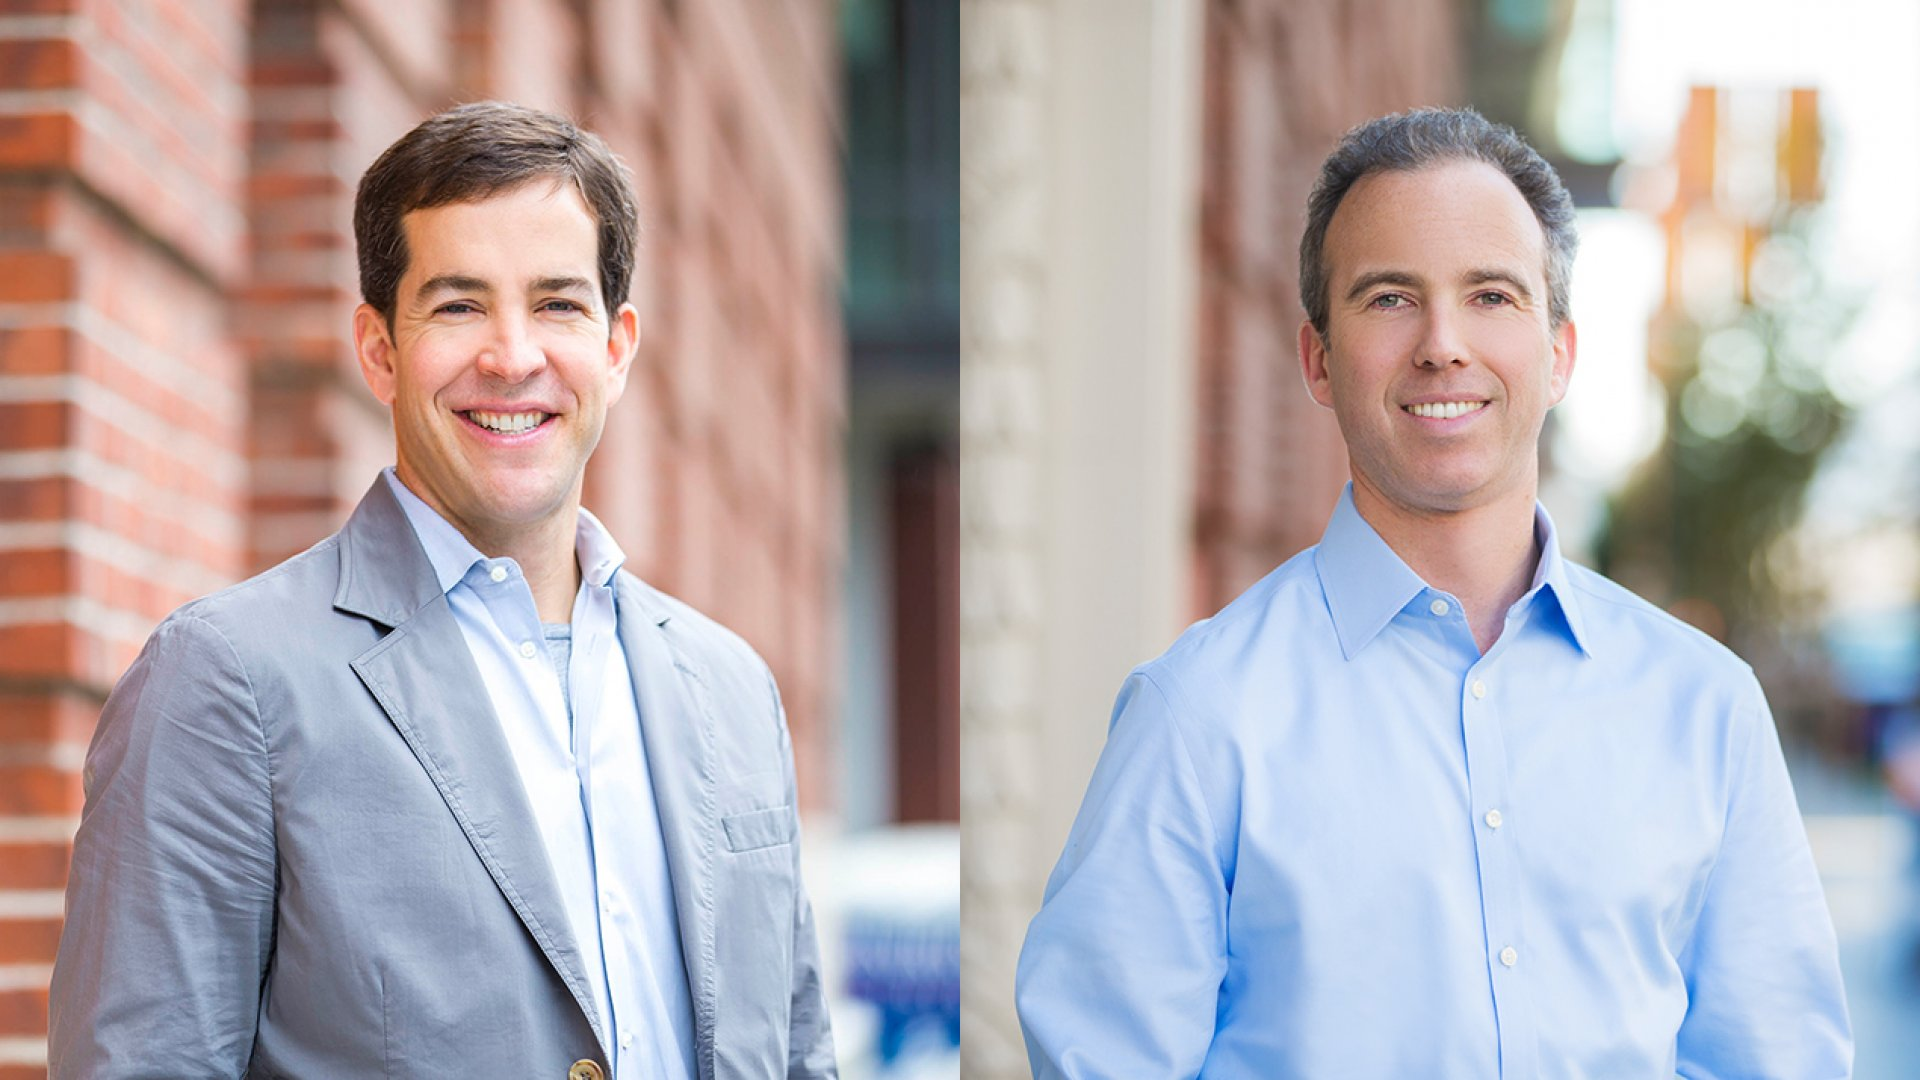 From left to right: Todd McKinnon and Frederic Kerrest, Okta's co-founders